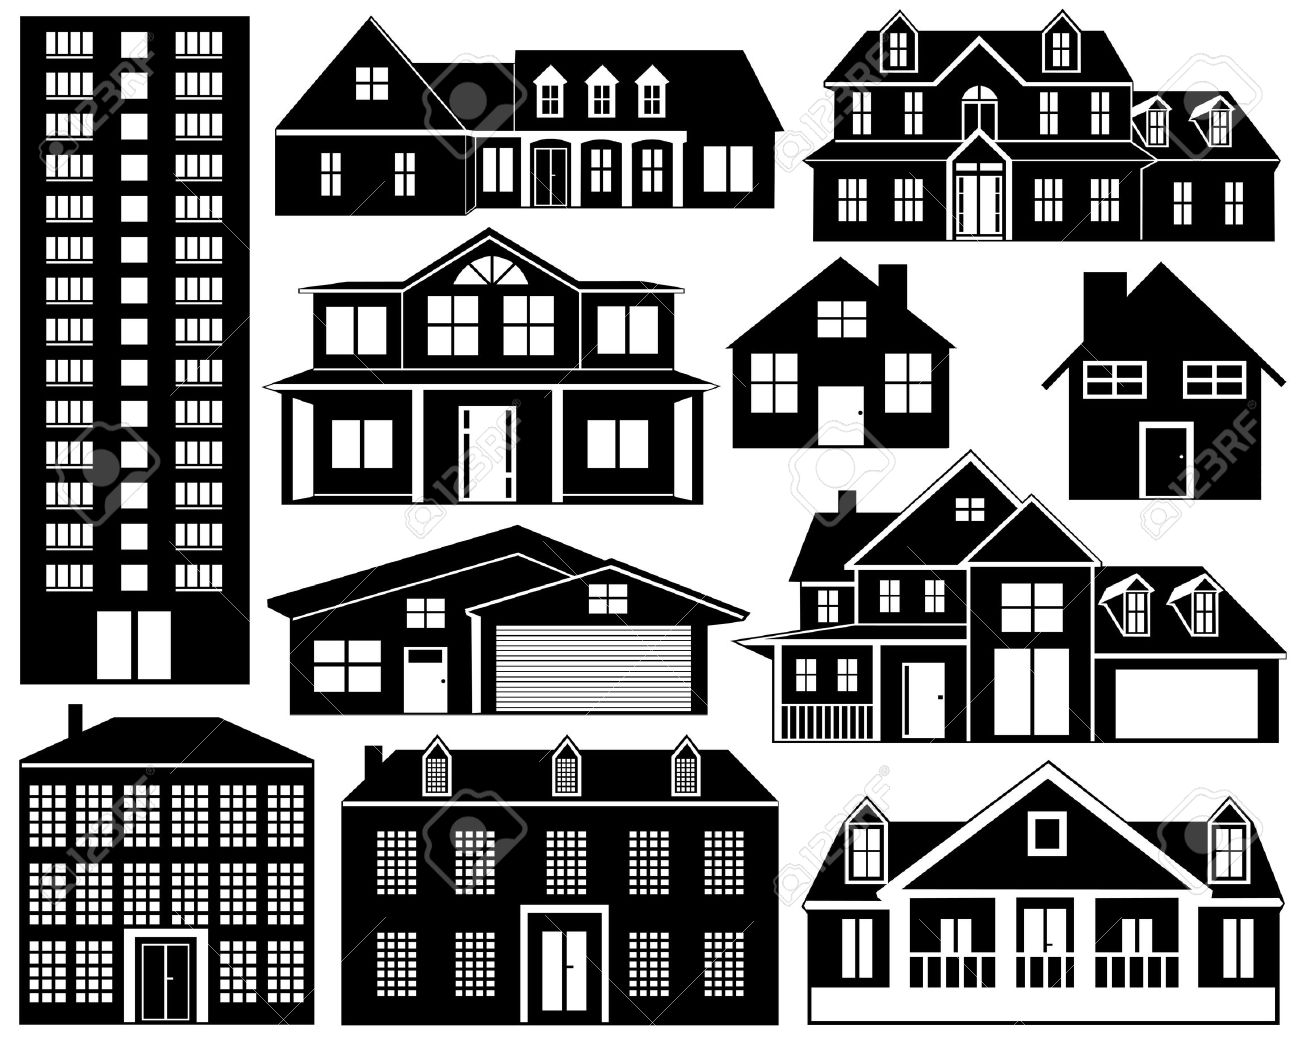 House silhouettes isolated on white - 12355750